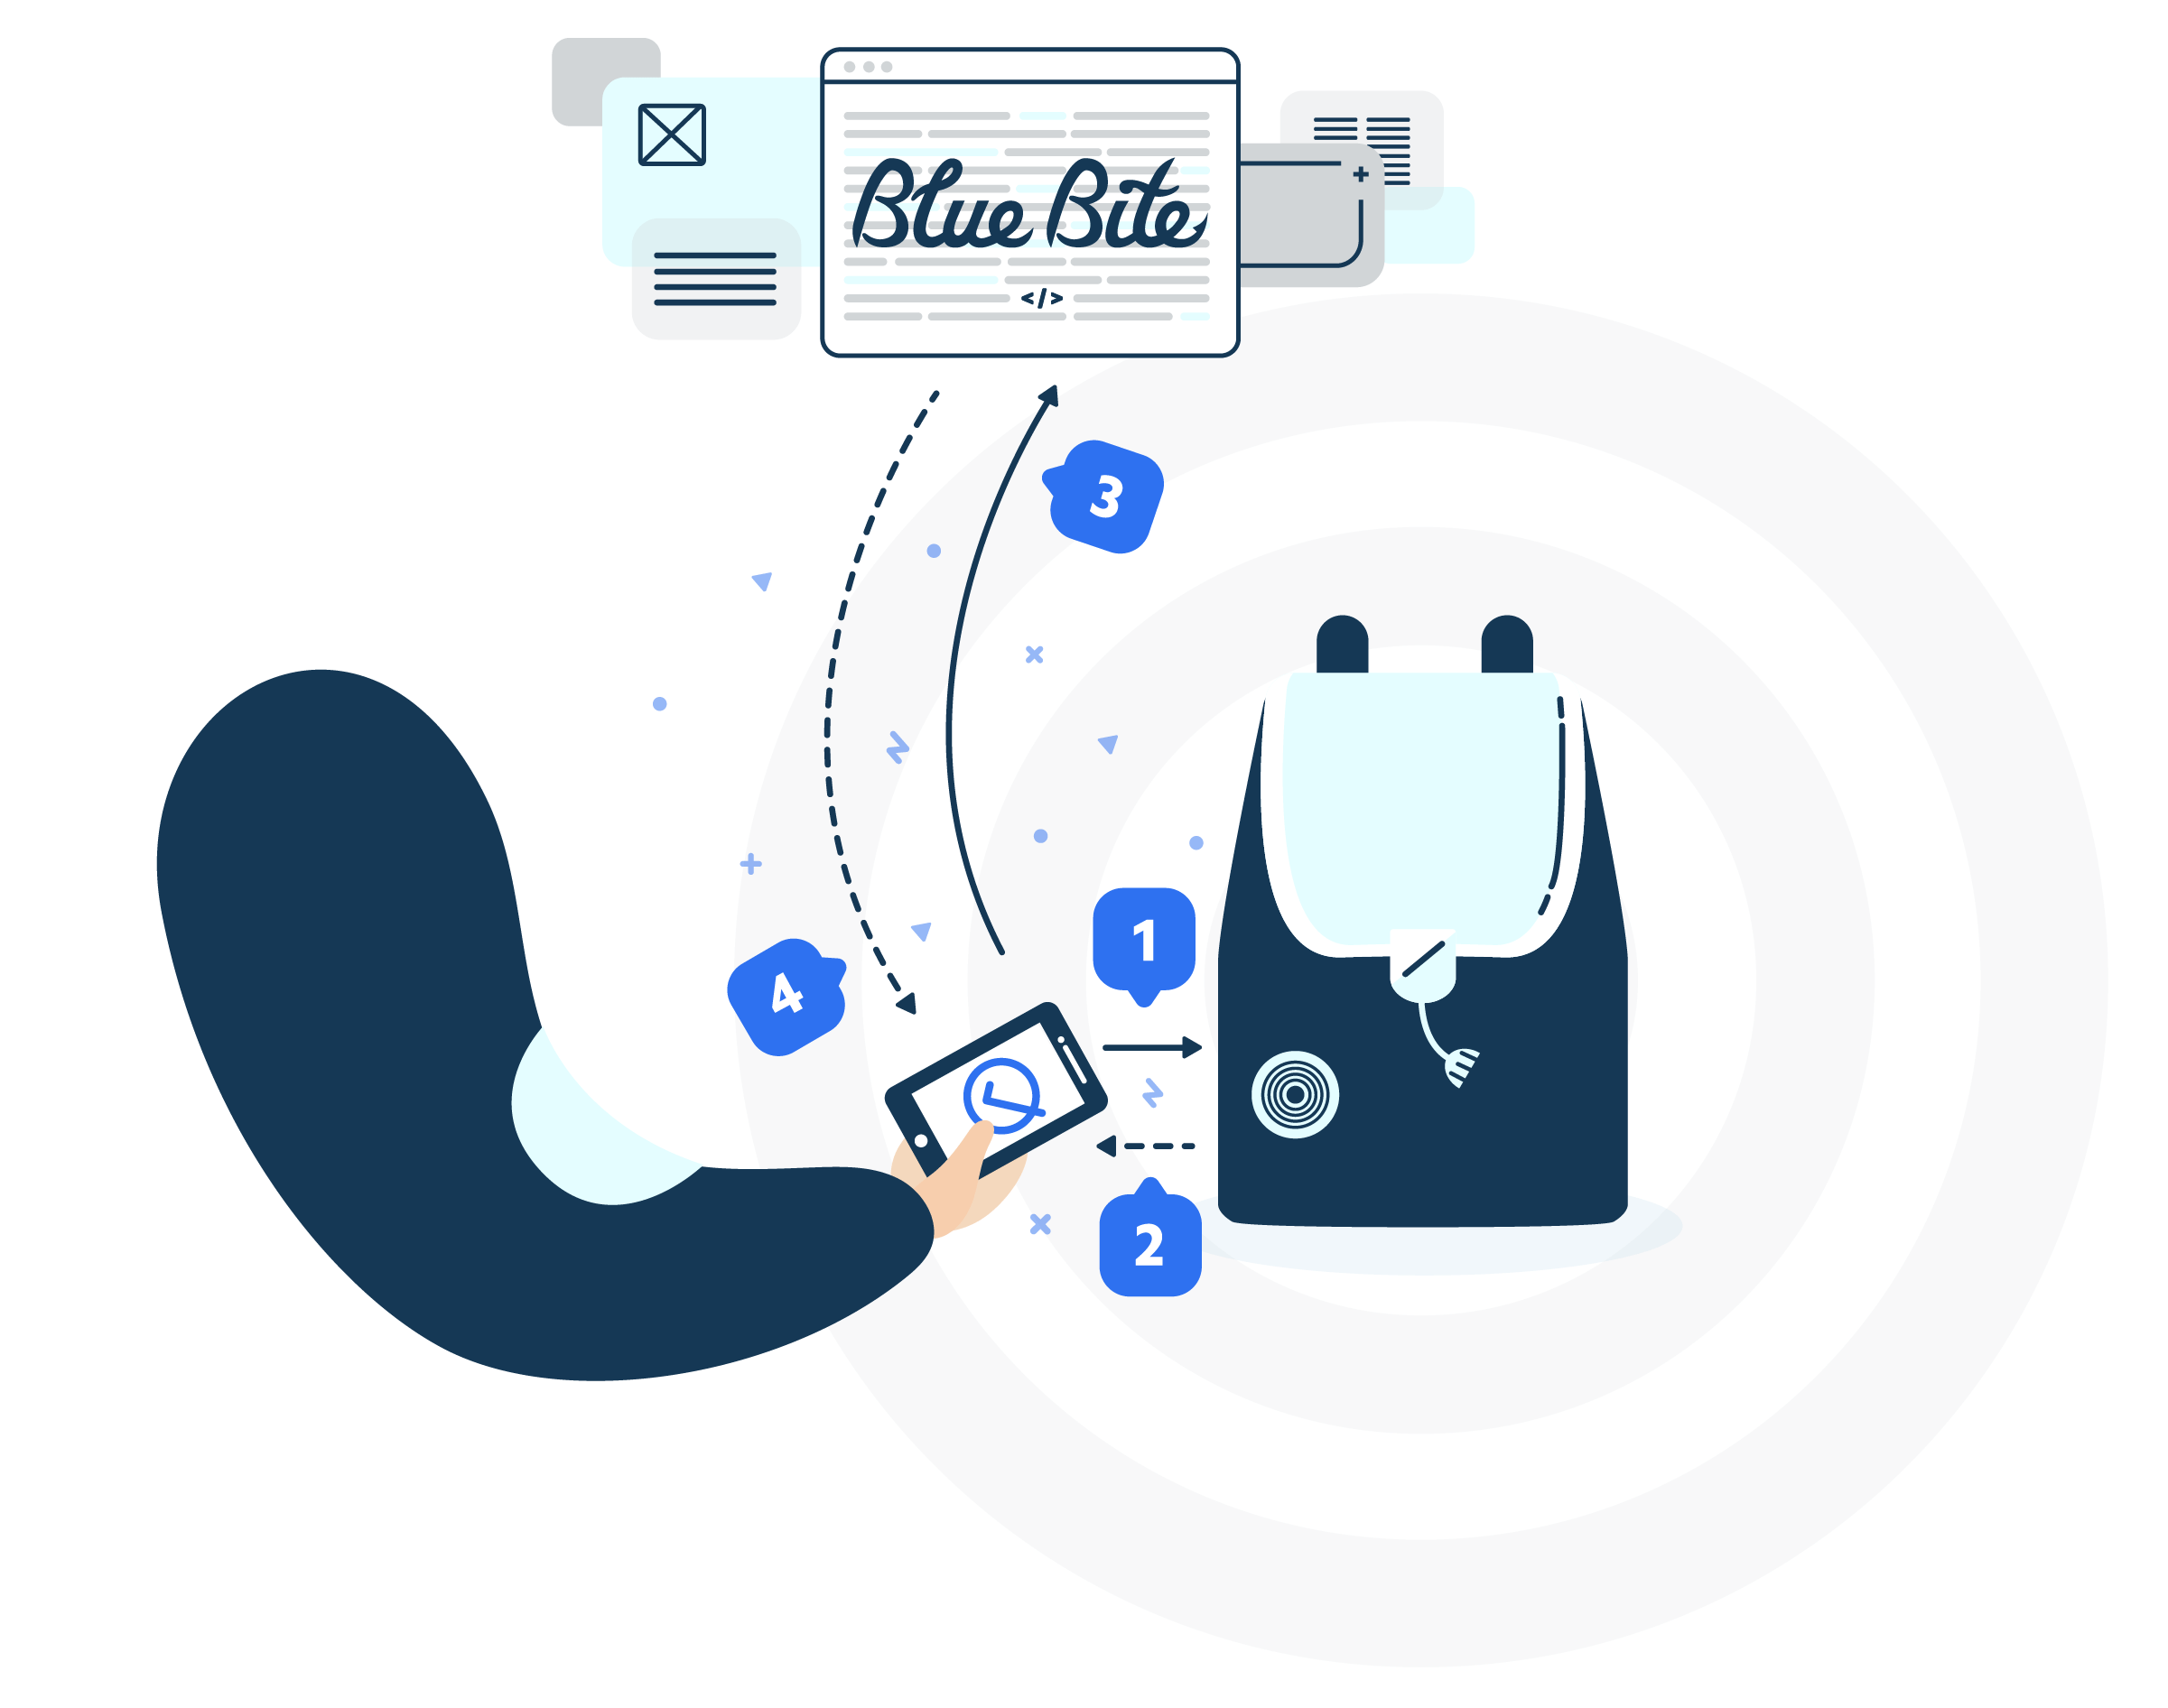 Blue Bite Authentication Flow